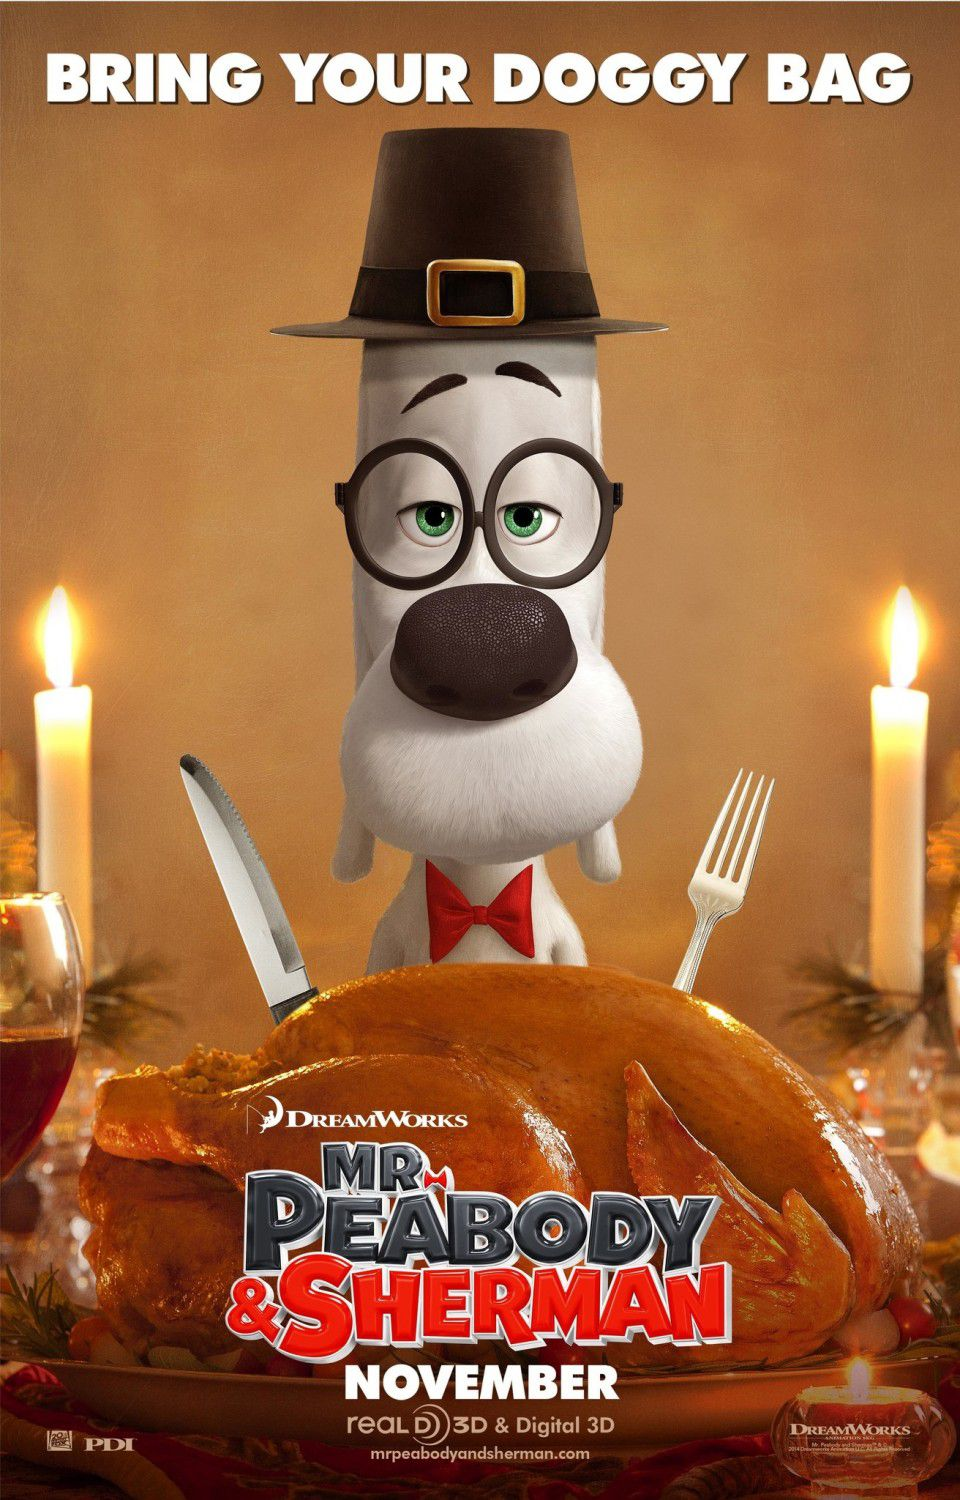 Mr Peabody and Sherman - animate film poster - Thanksgiving day